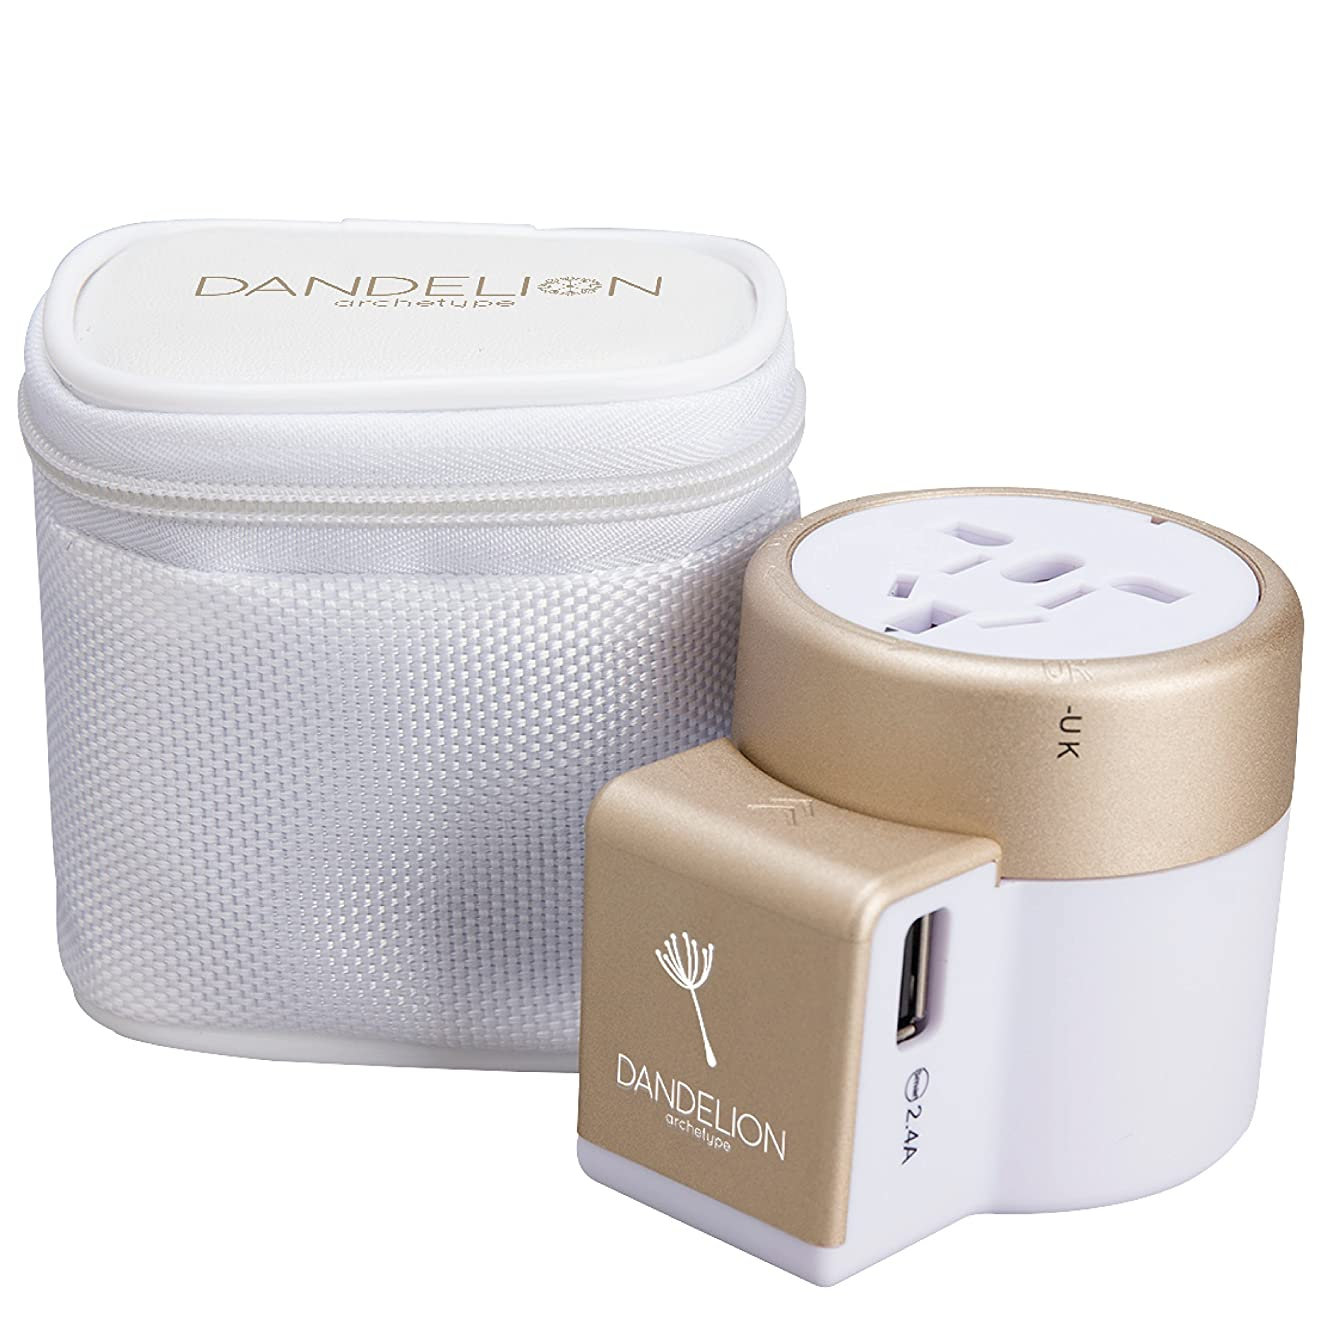 Dandelion Travel Adapter Outlet Adapter Traveler Accessory Universal Wall Charger 2 USB Ports (UK, USA, AU, Europe, Asia) International Power Plug Adaptor for Multiple Socket Type C, A, I, G (Gold)